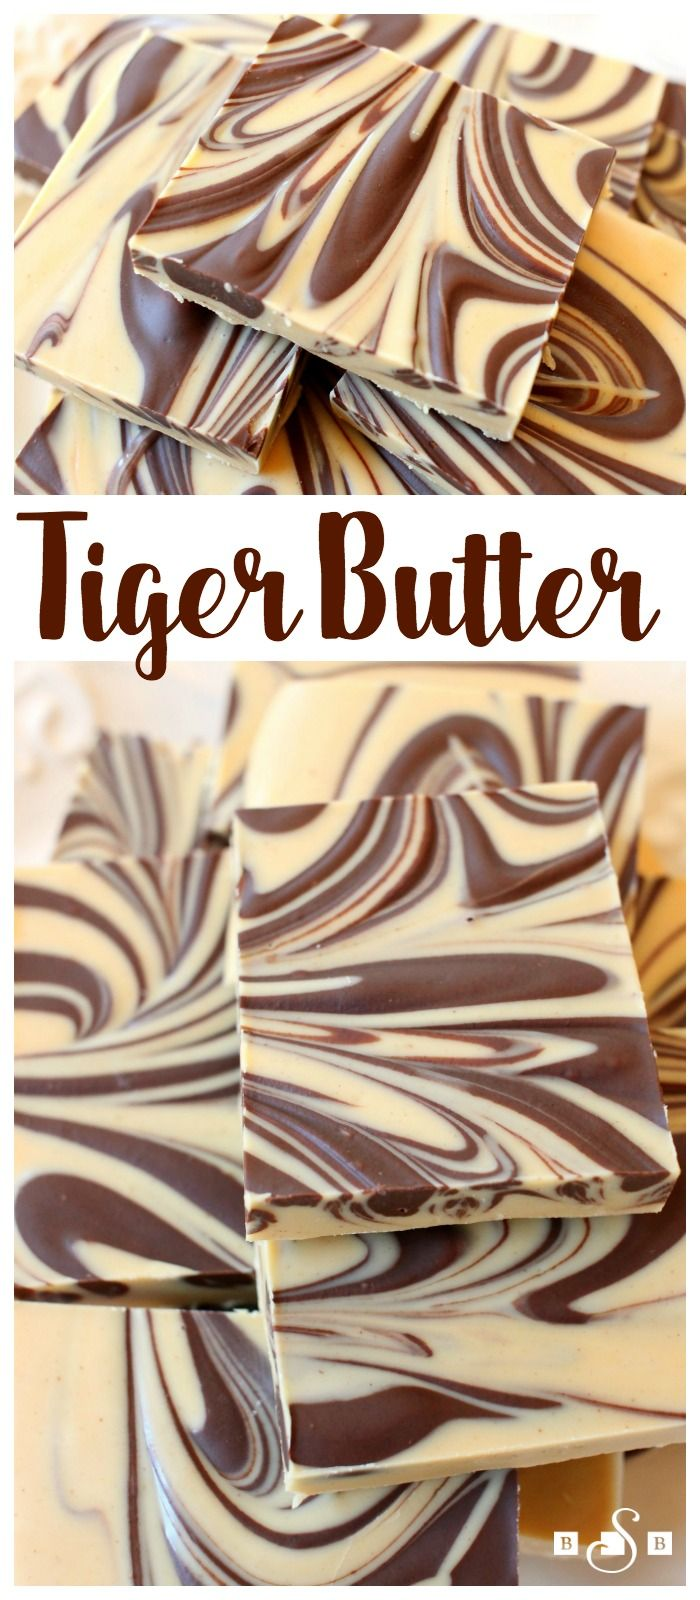 Tiger Butter Fudge – a simple but indulgent fudge recipe that requires only 3 ingr